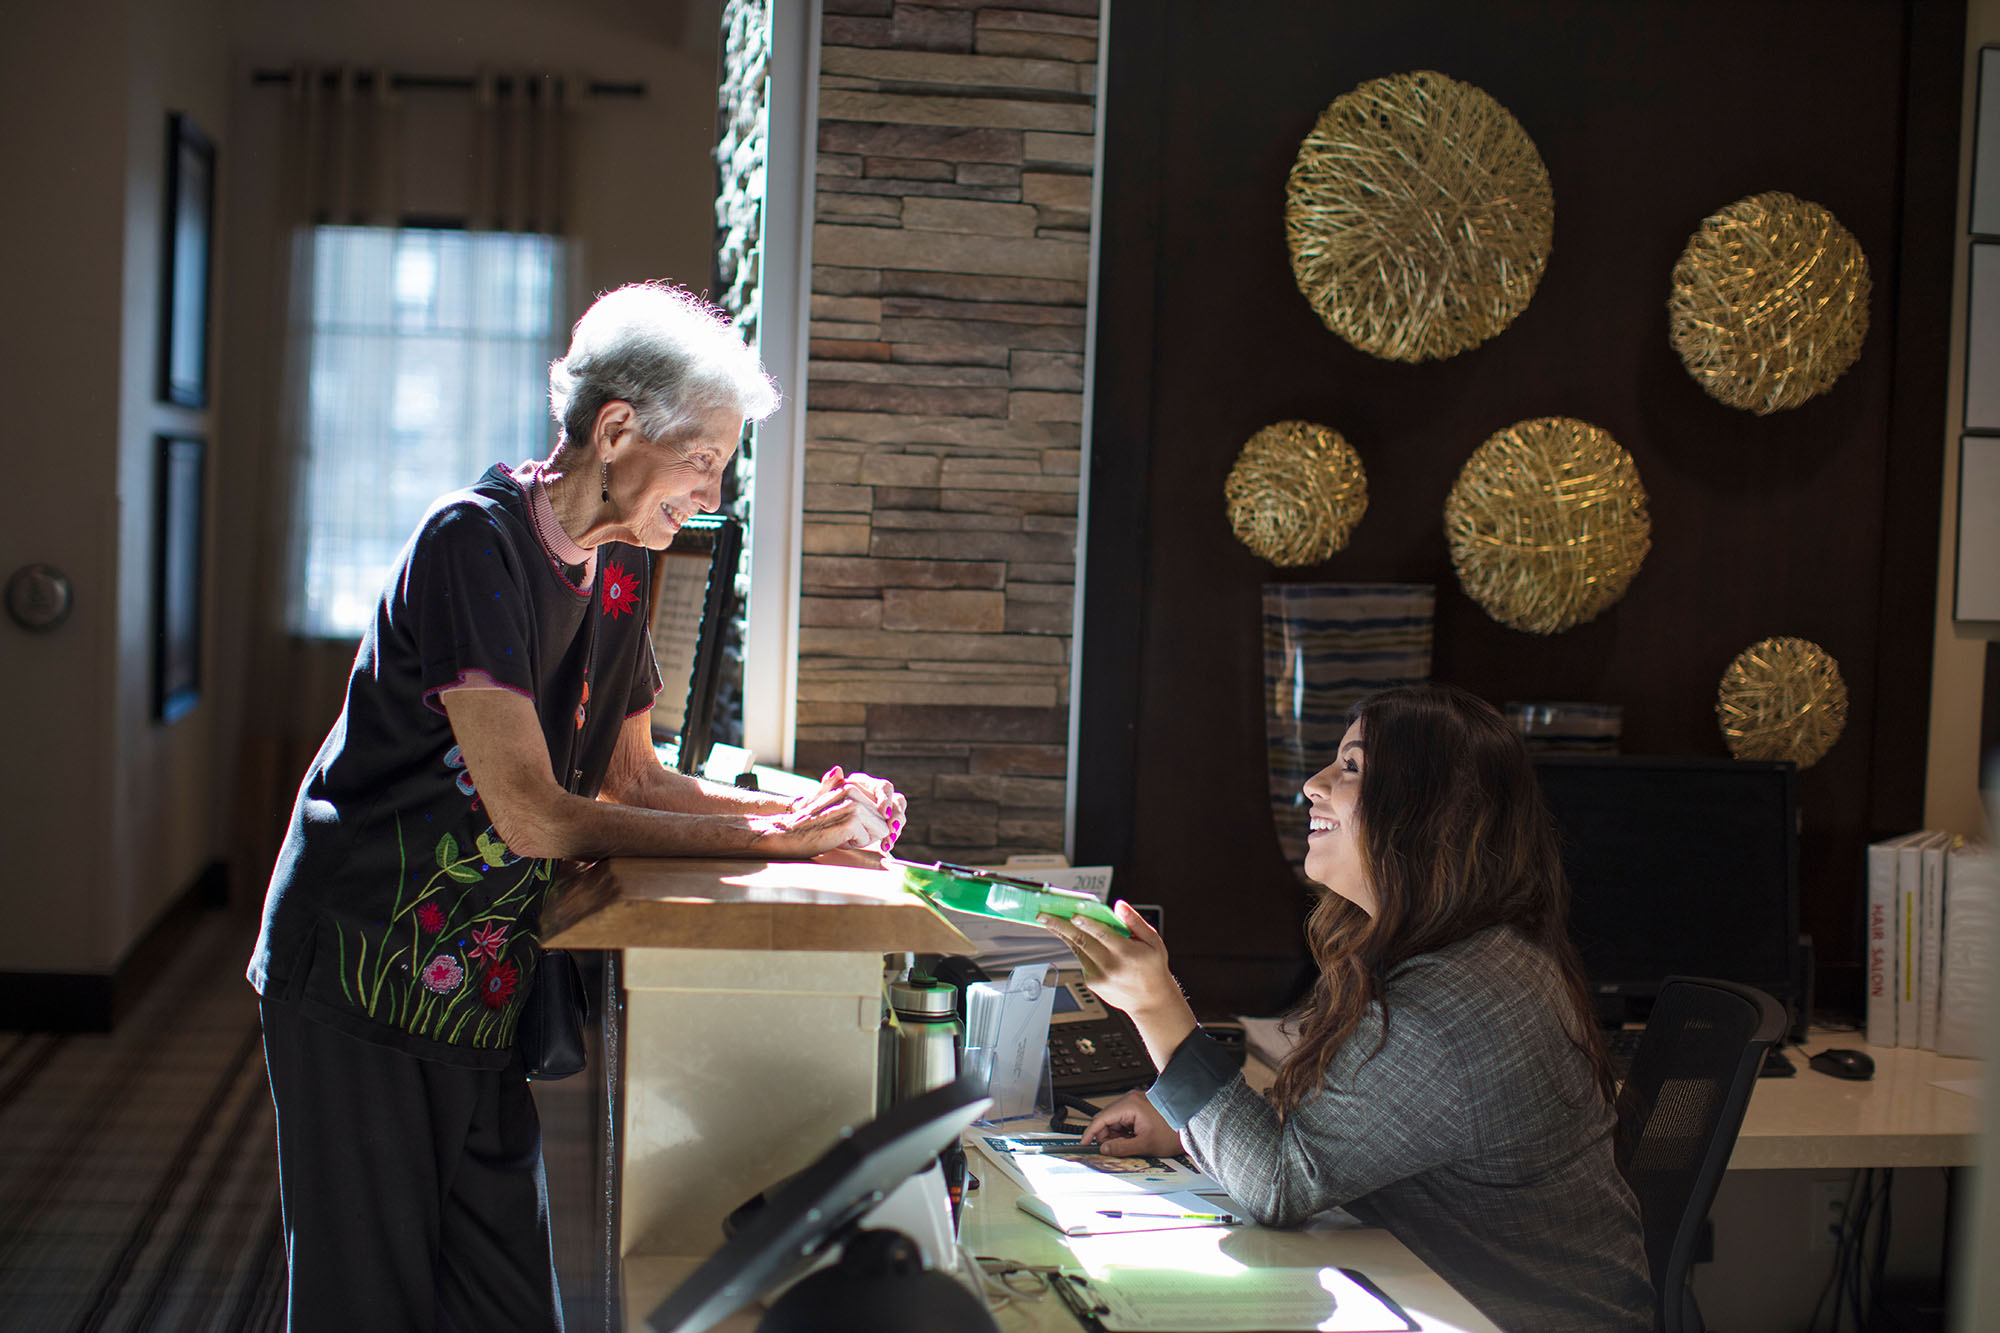 Resident getting help at the front desk